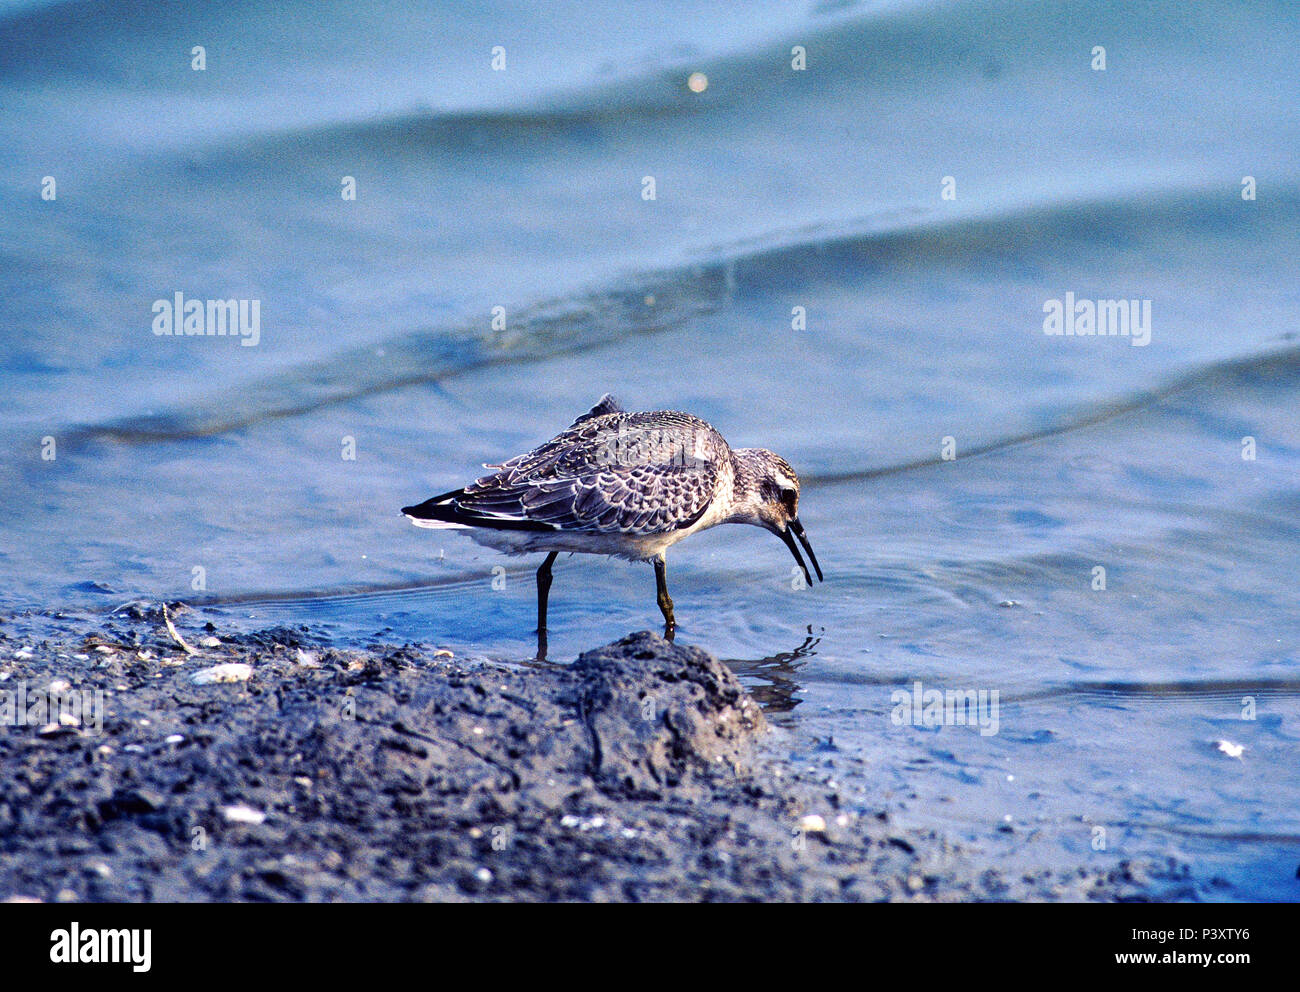 Knot Stock Photos Images Alamy Redknot Shoes Tech Brown Red Calidris Canutus Scolopacidae Wader Bird Animal Oostvaarder Plassen